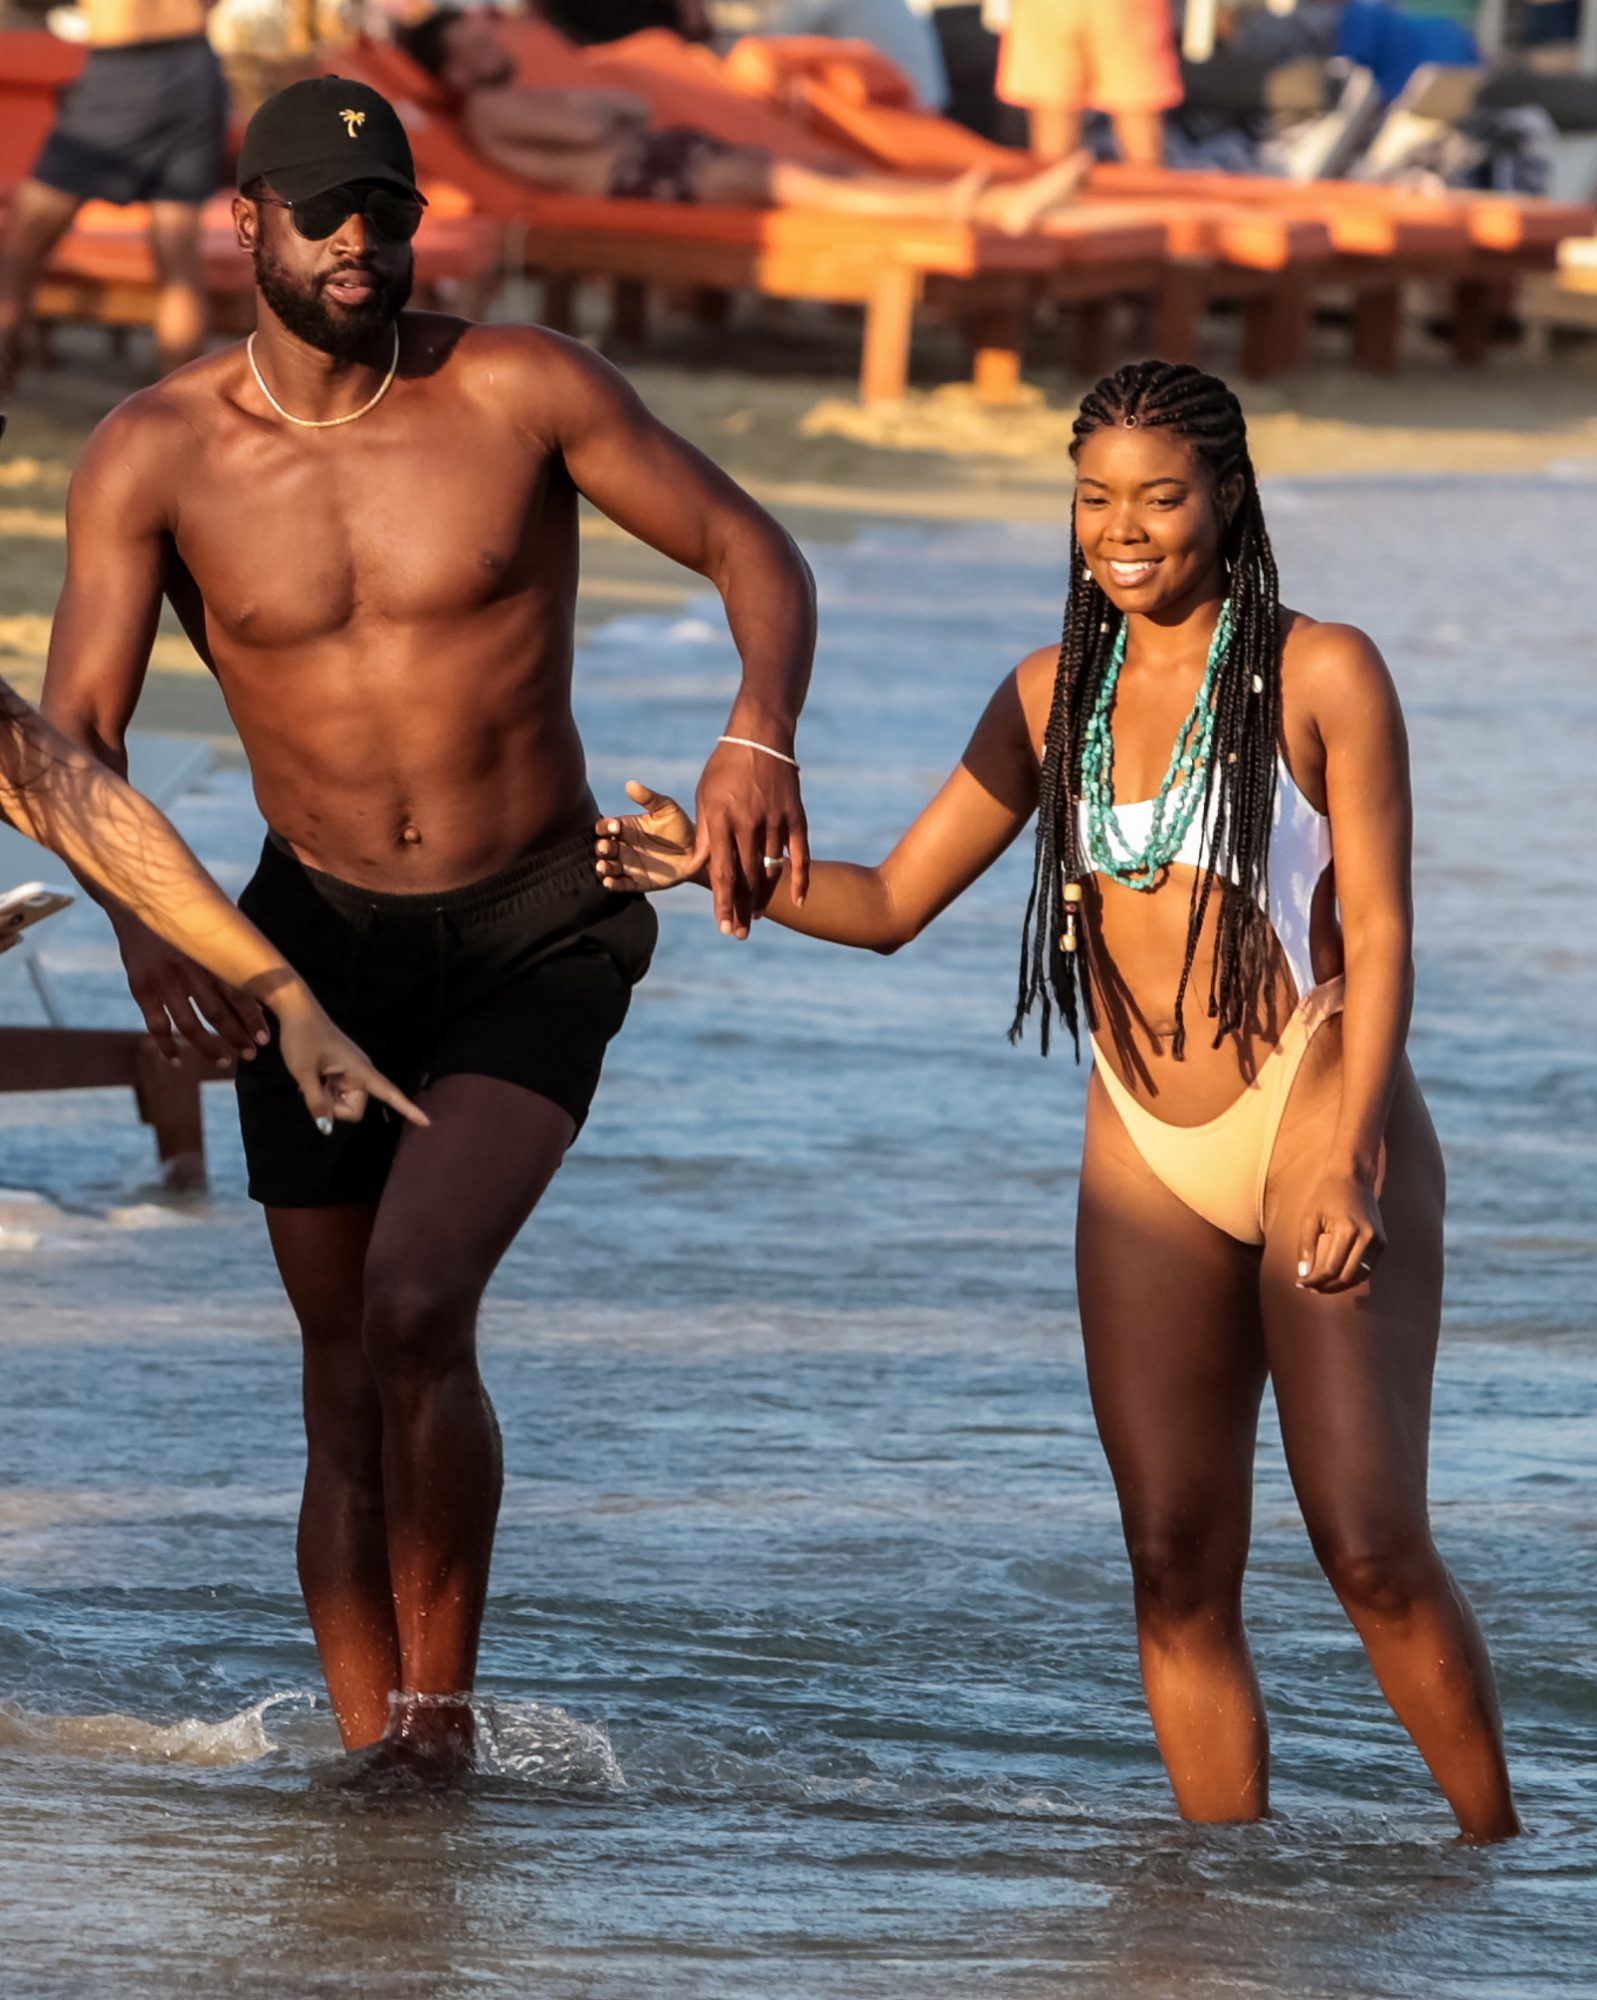 Gabrielle Union and Dwayne Wade celebrate anniversary in Greece